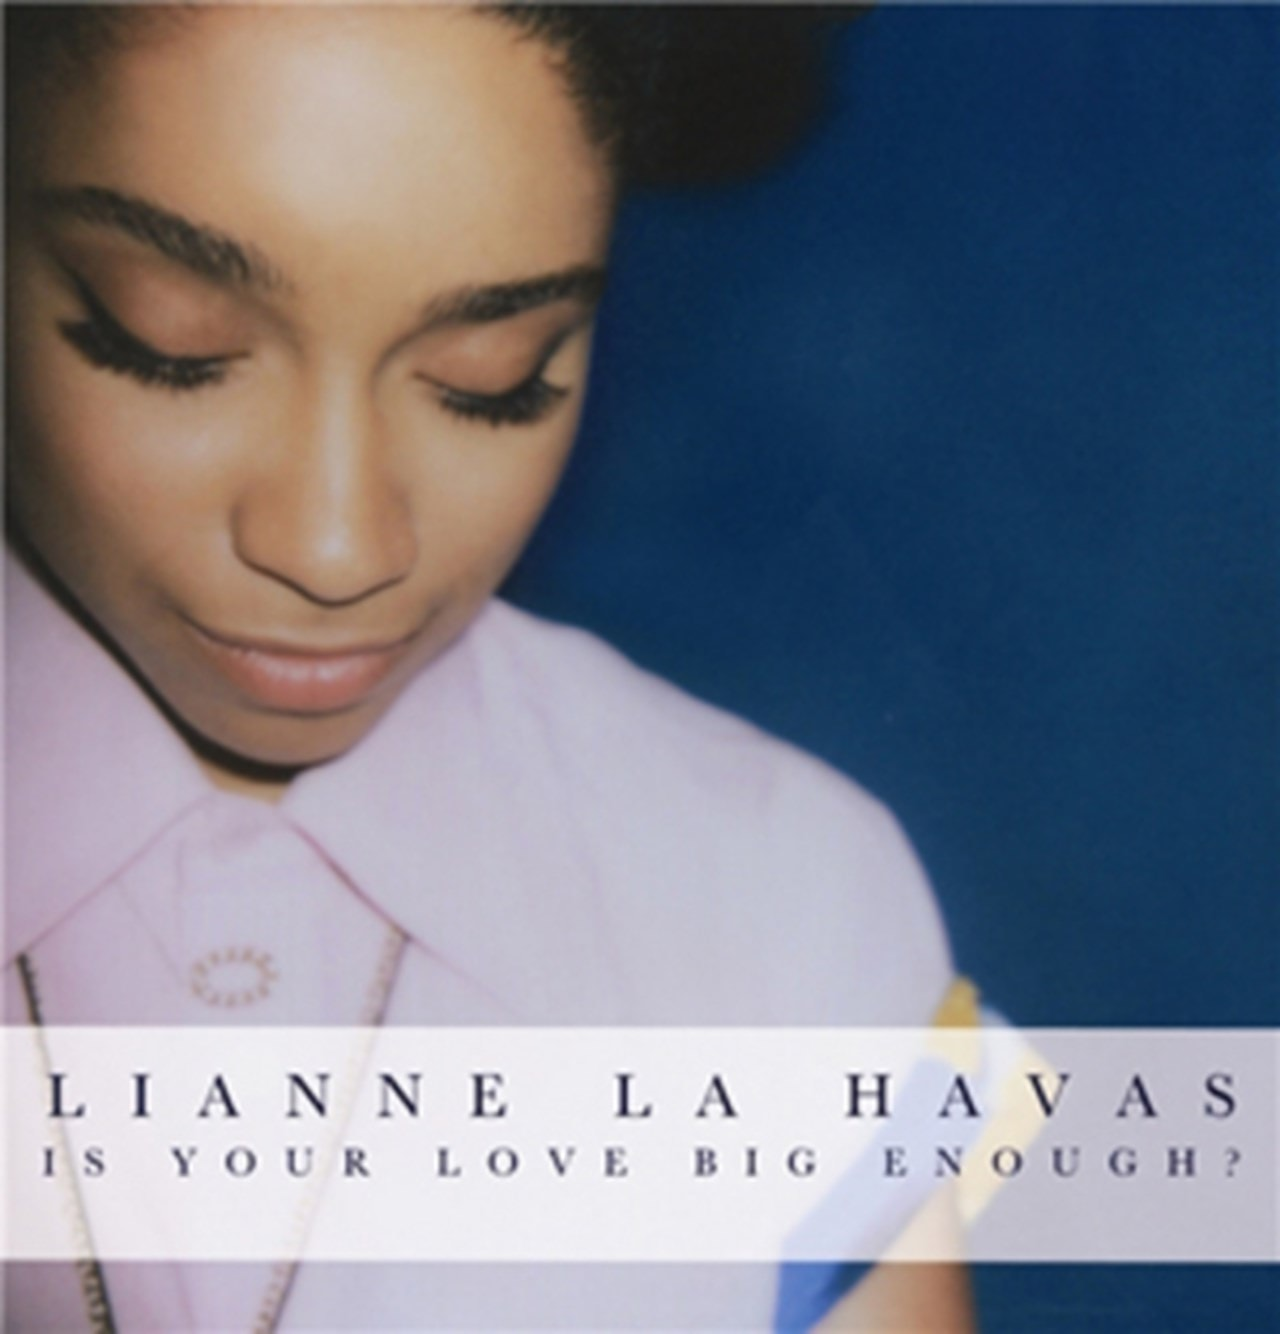 Is Your Love Big Enough? - 1